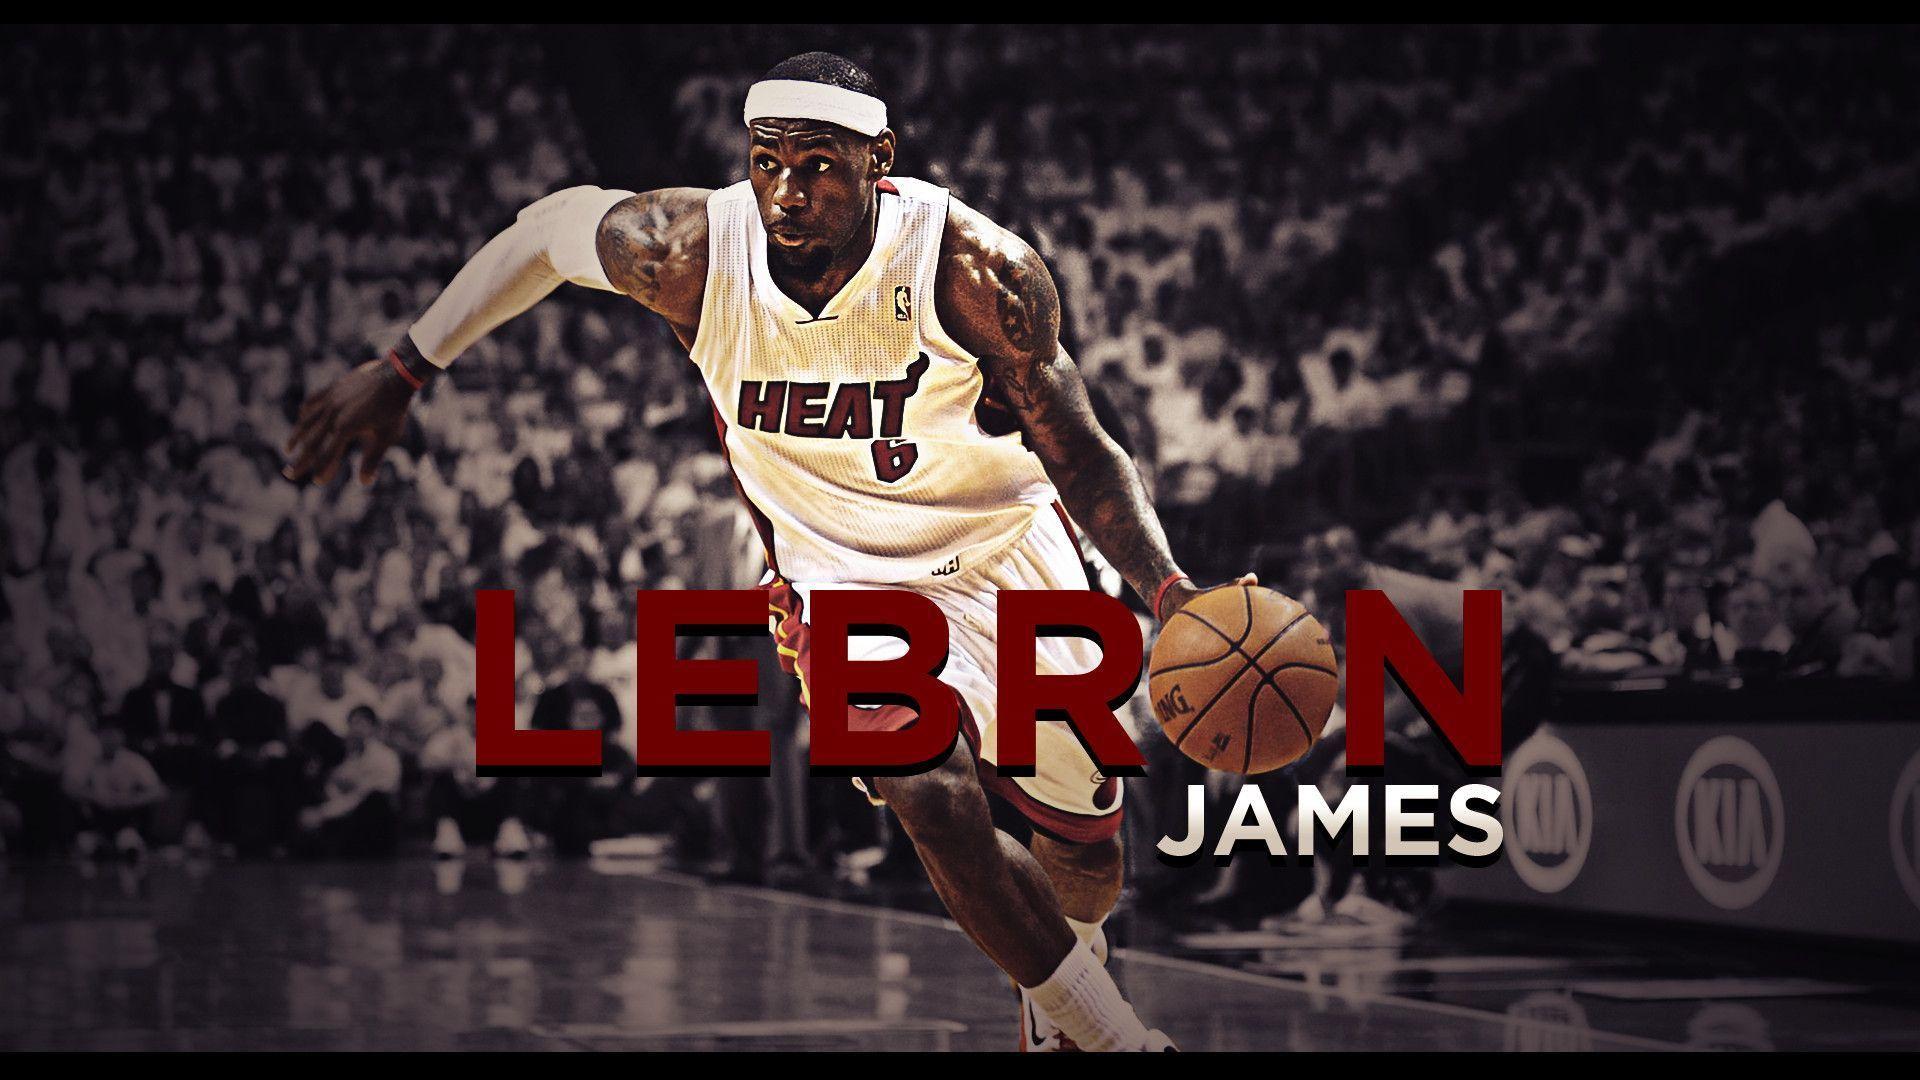 Lebron James Cleveland Wallpapers HD Free download | PixelsTalk.Net